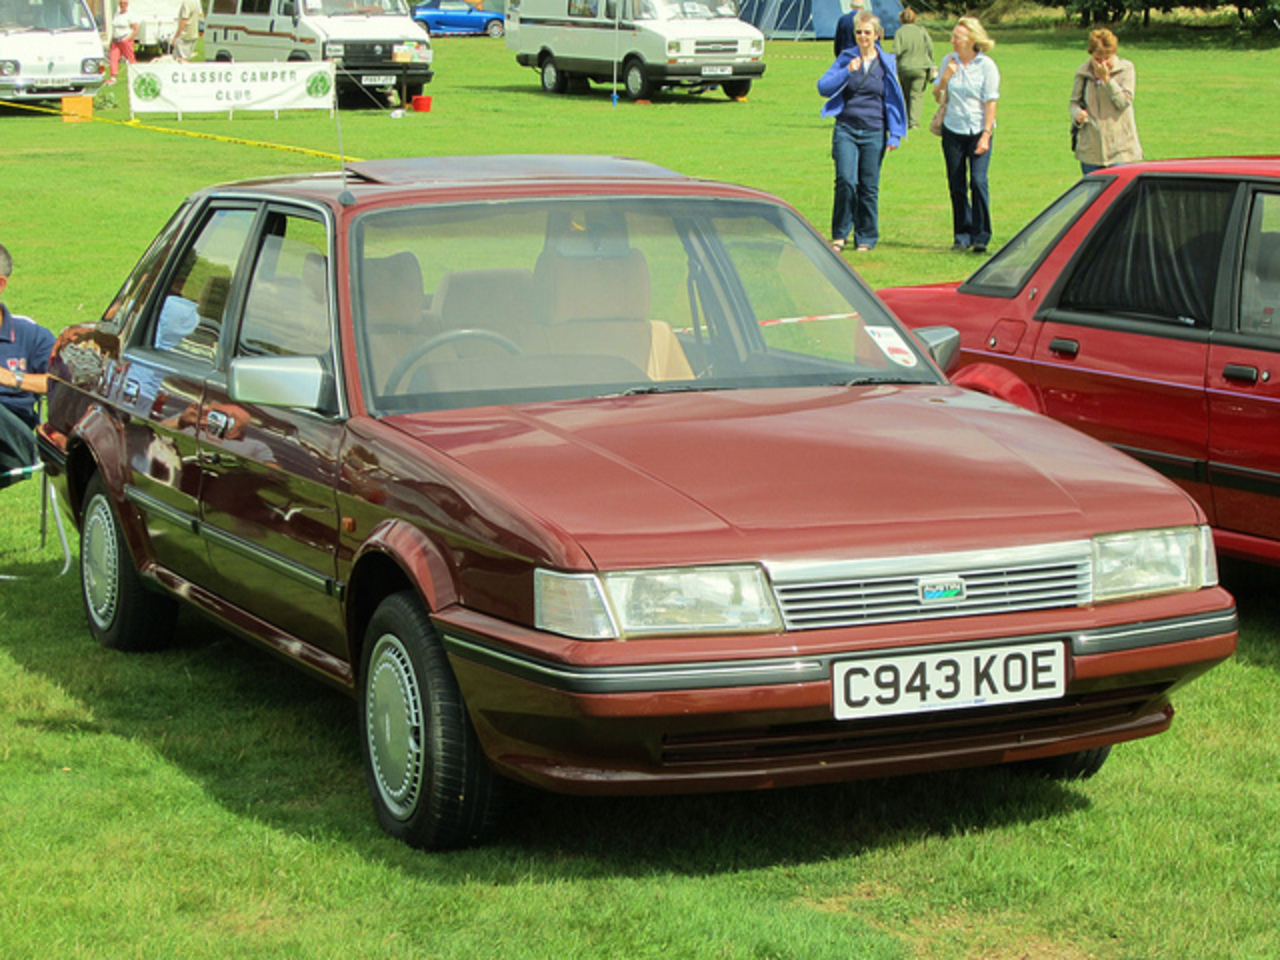 1986 Austin Montego 1.6 Mayfair. | Flickr - Photo Sharing!